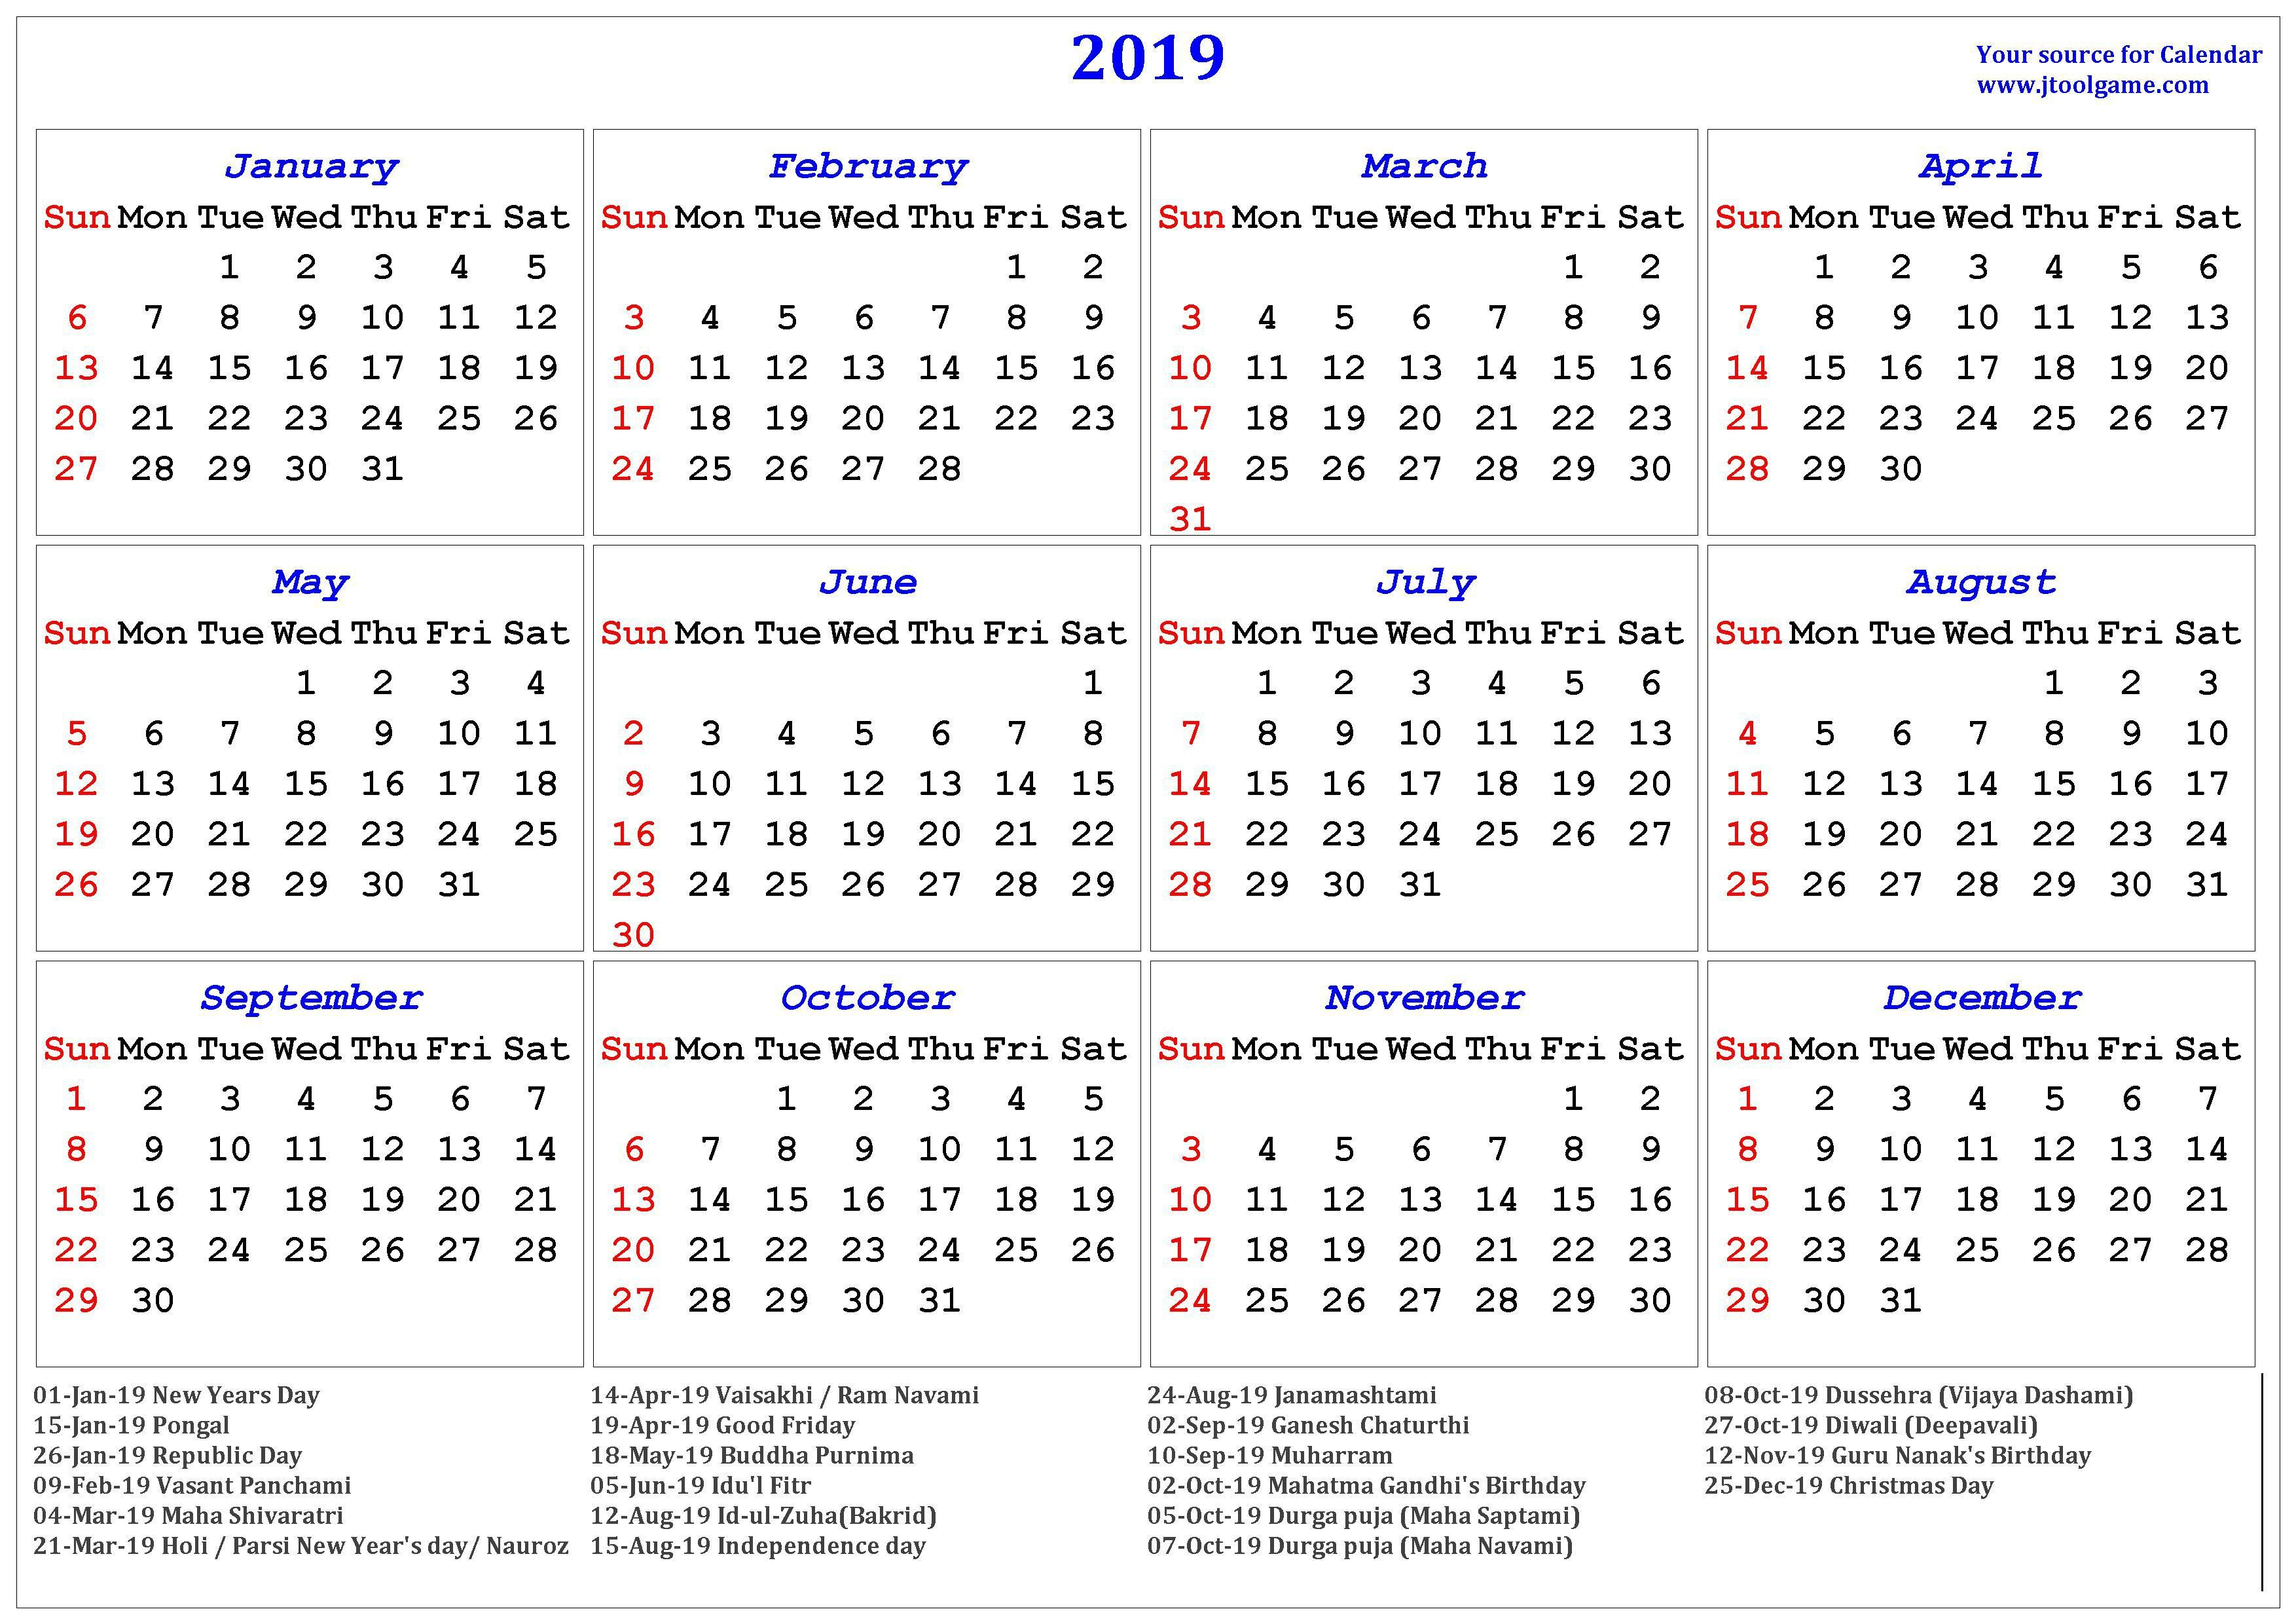 2019 Hindu Calendar With Tithi | Tyohar, Holidays, Festivals with Calender Of October 2019 According To Tithi